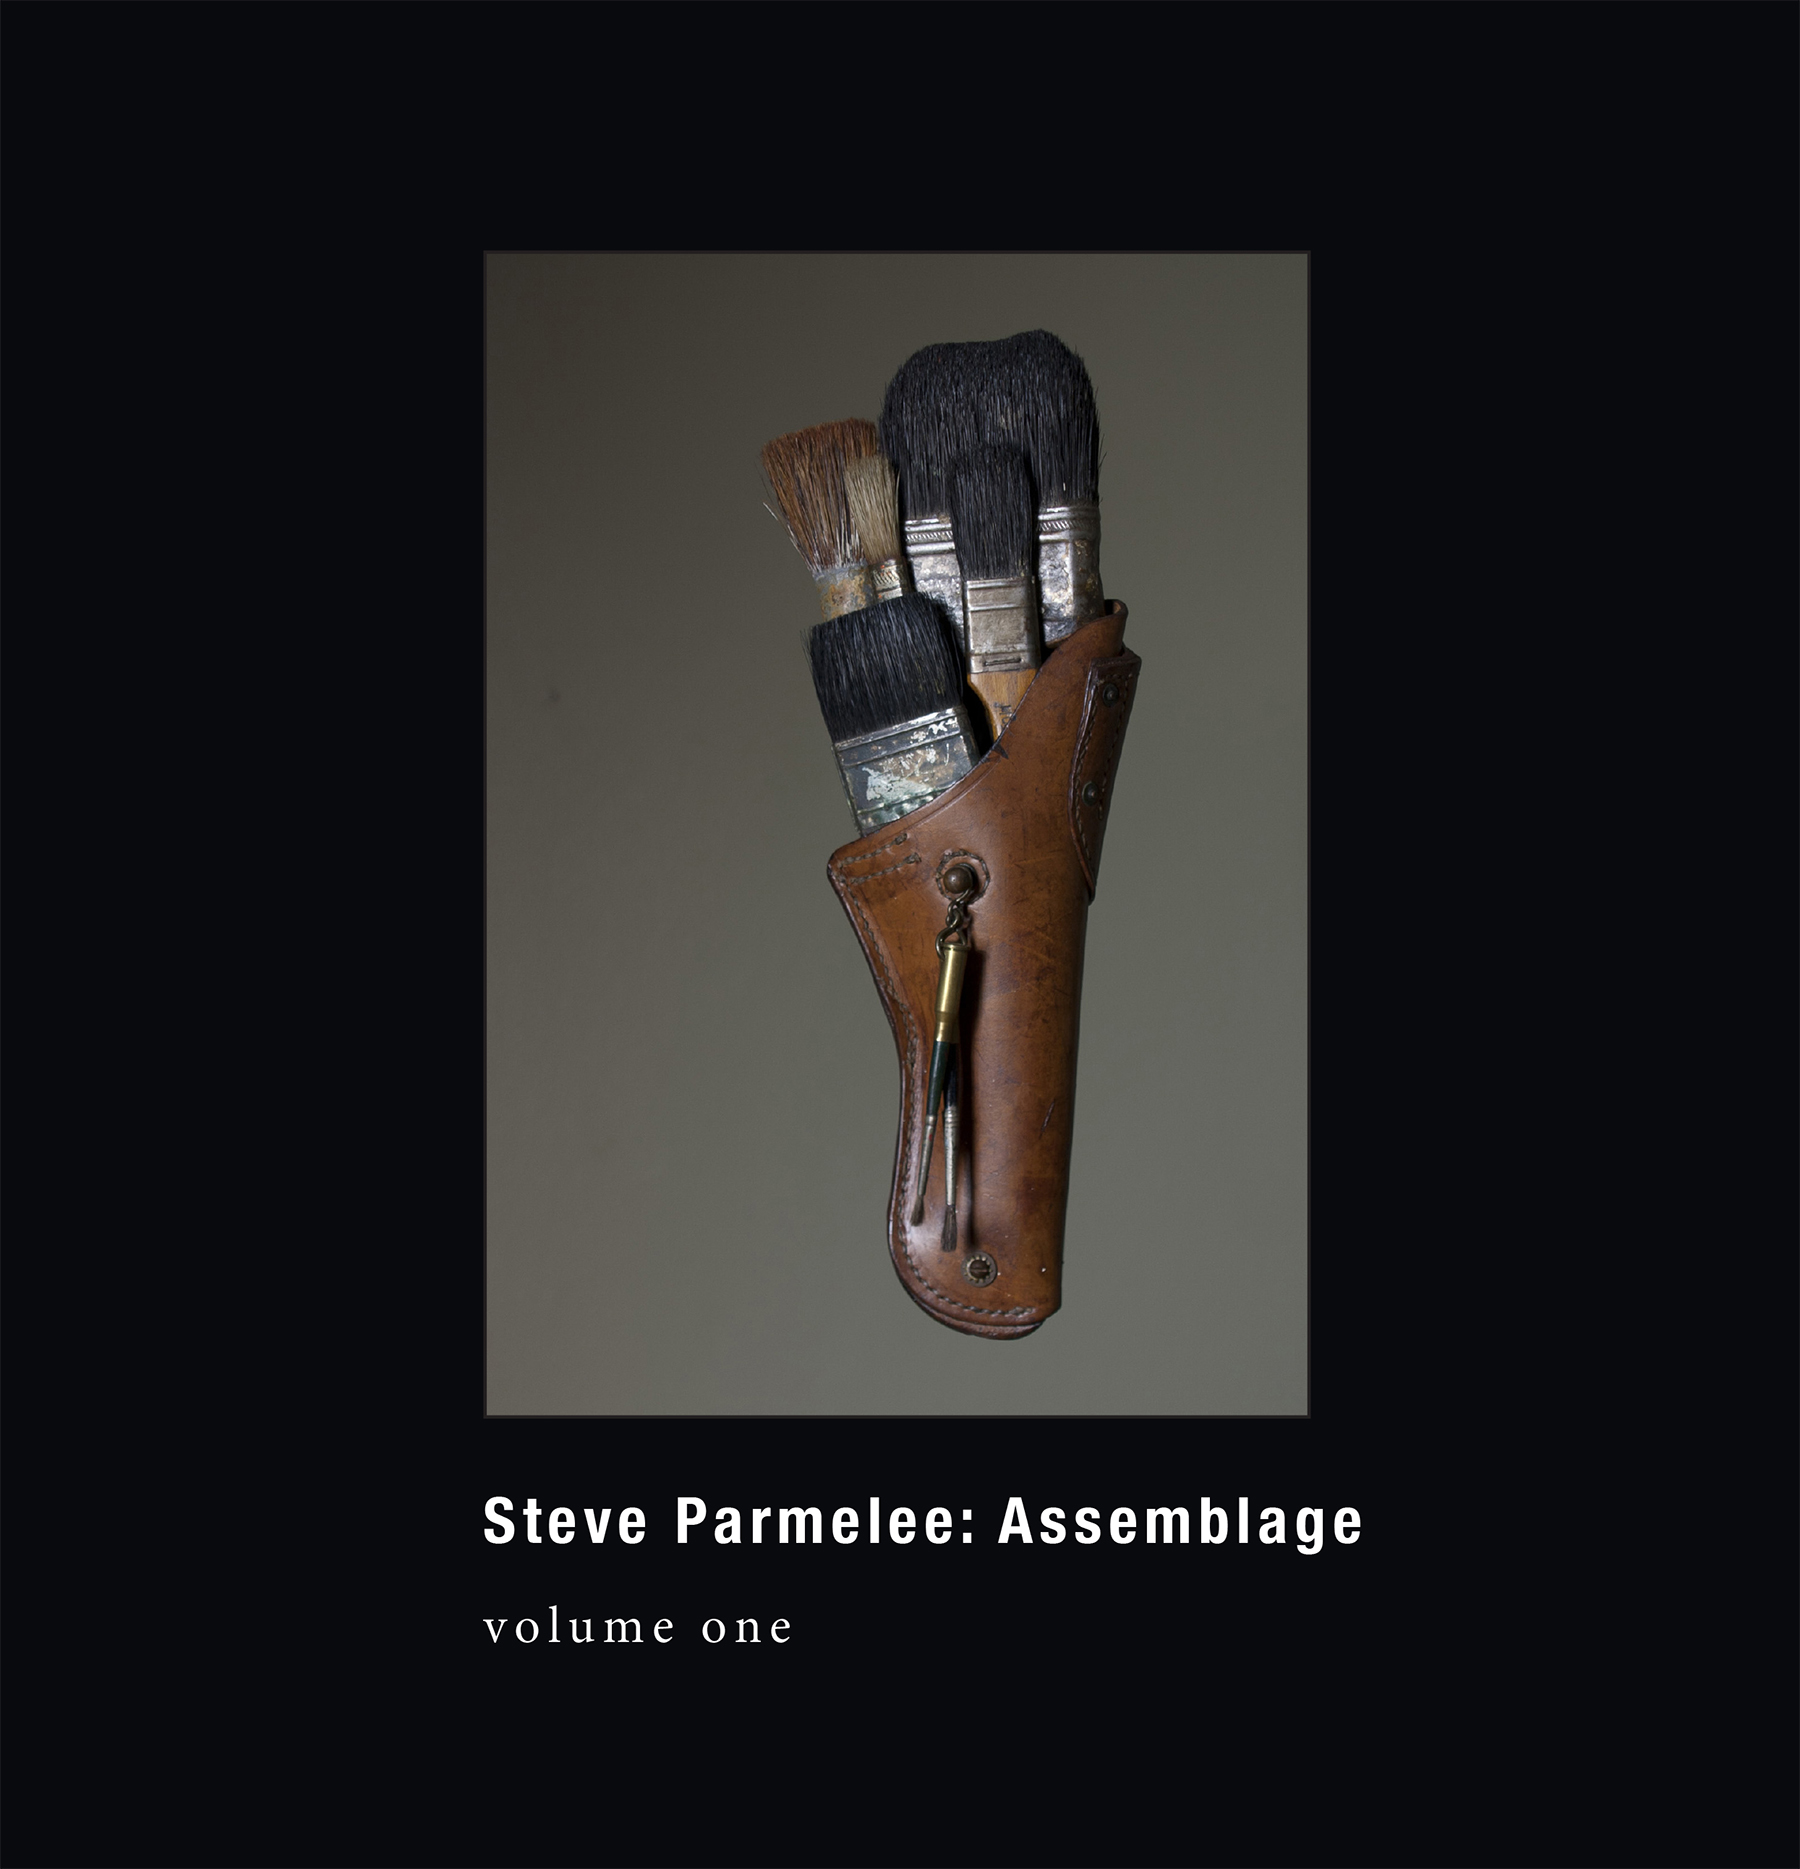 Available for purchase on Amazon;  Steve Parmelee: Assemblage volume one